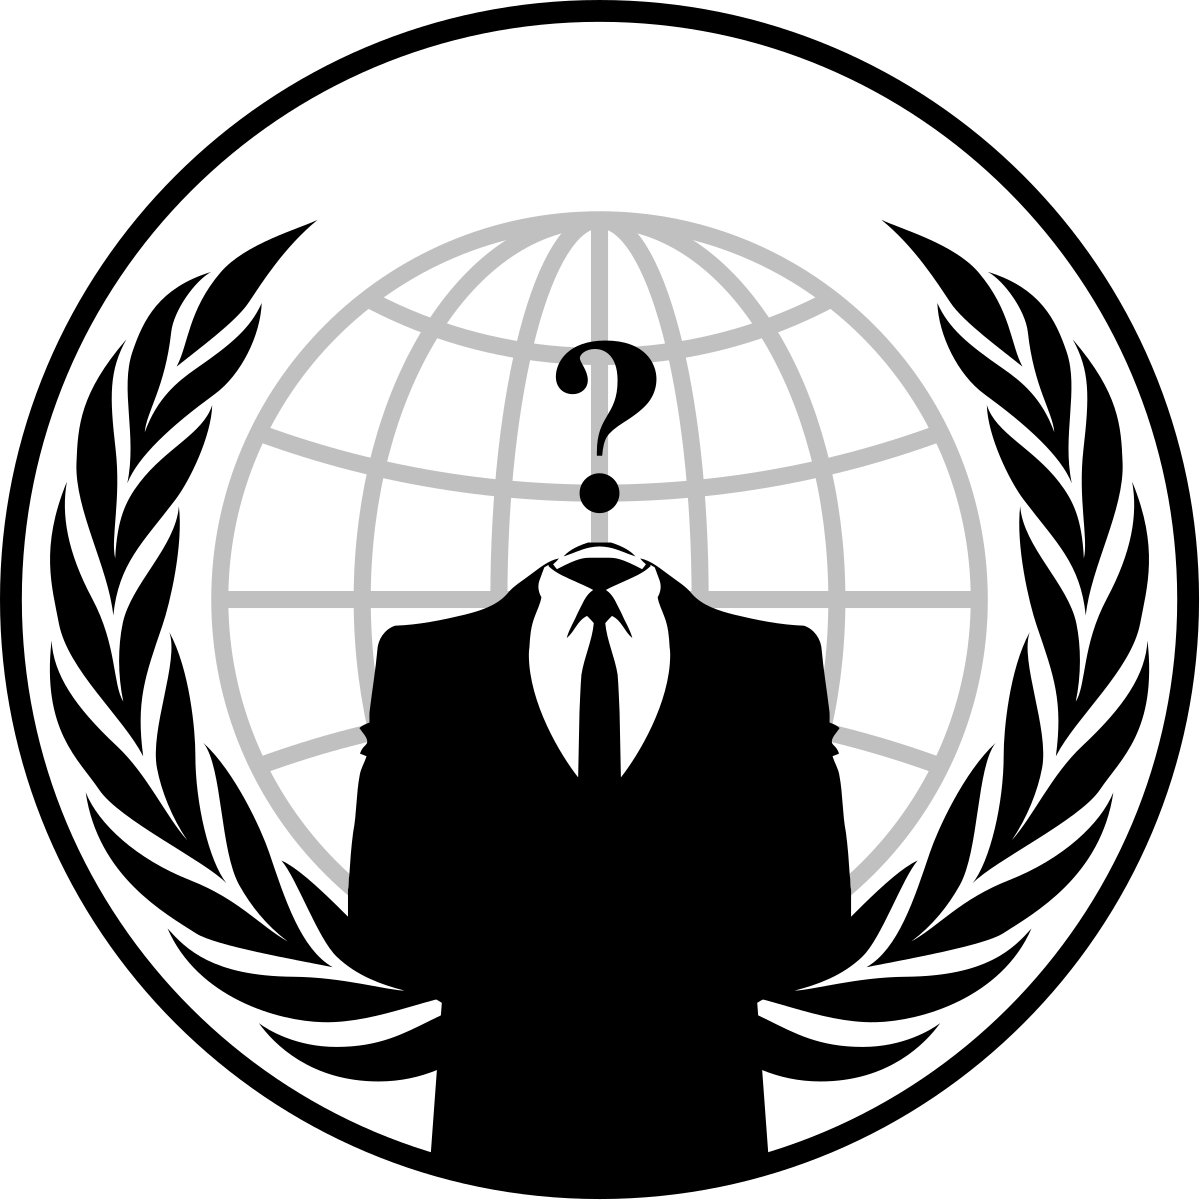 The emblem for the group Anonymous